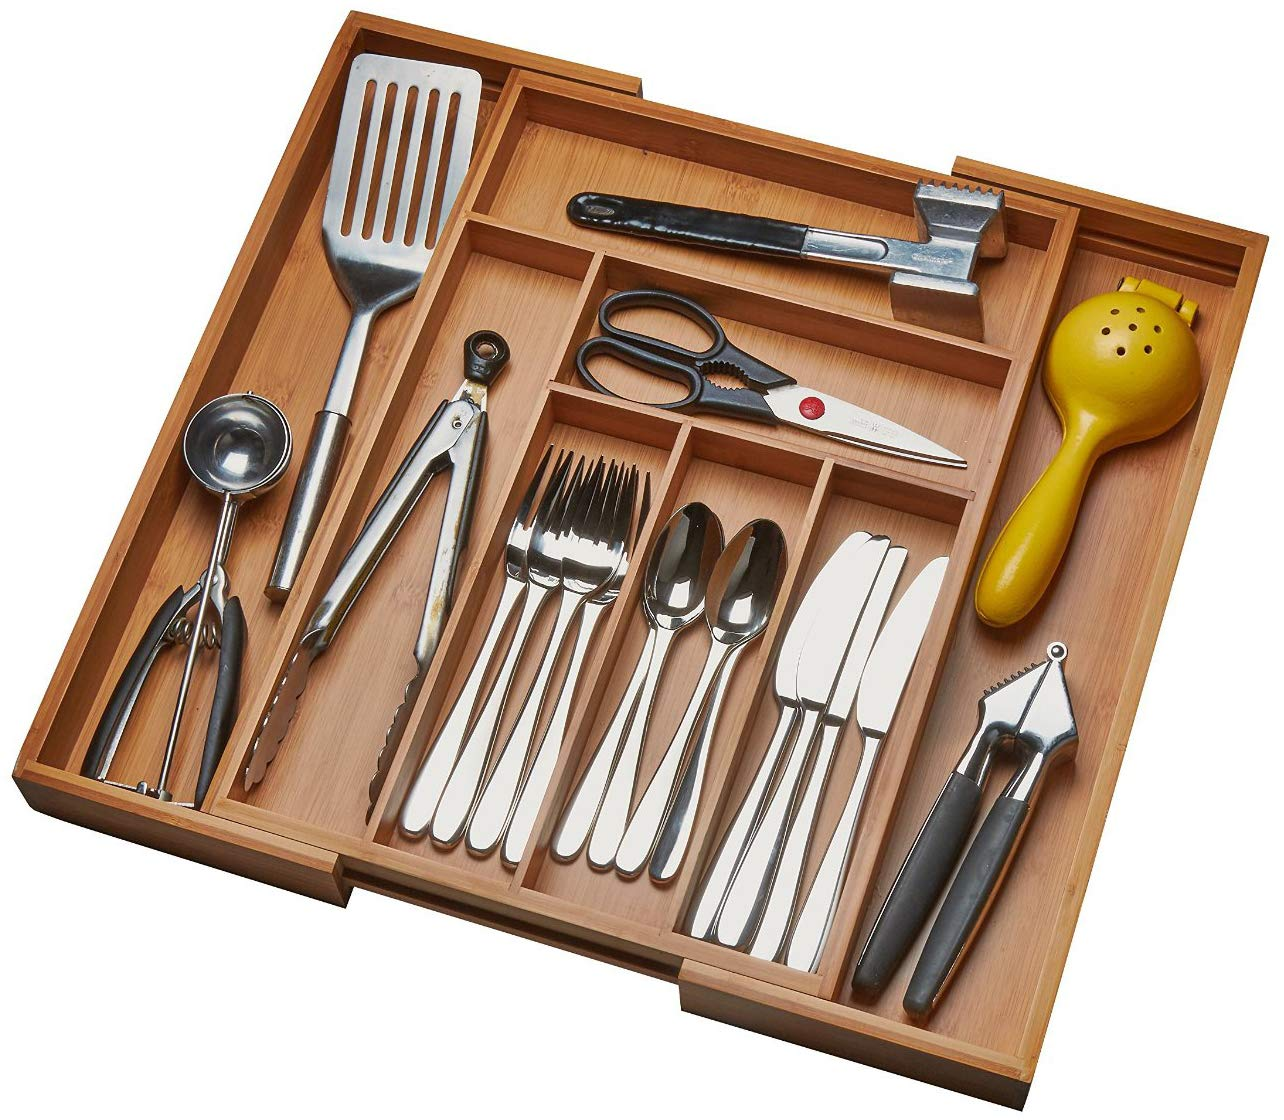 Kitchen Drawer Organizer, Adjustable Drawer Dividers to Fit Snugly Into Any Kitchen Drawer. Attractive Bamboo Wood Flatware, Cutlery and Utensil Tray is Also a Great Drawer Organizer Around the Home. by Handy Laundry (Image #2)